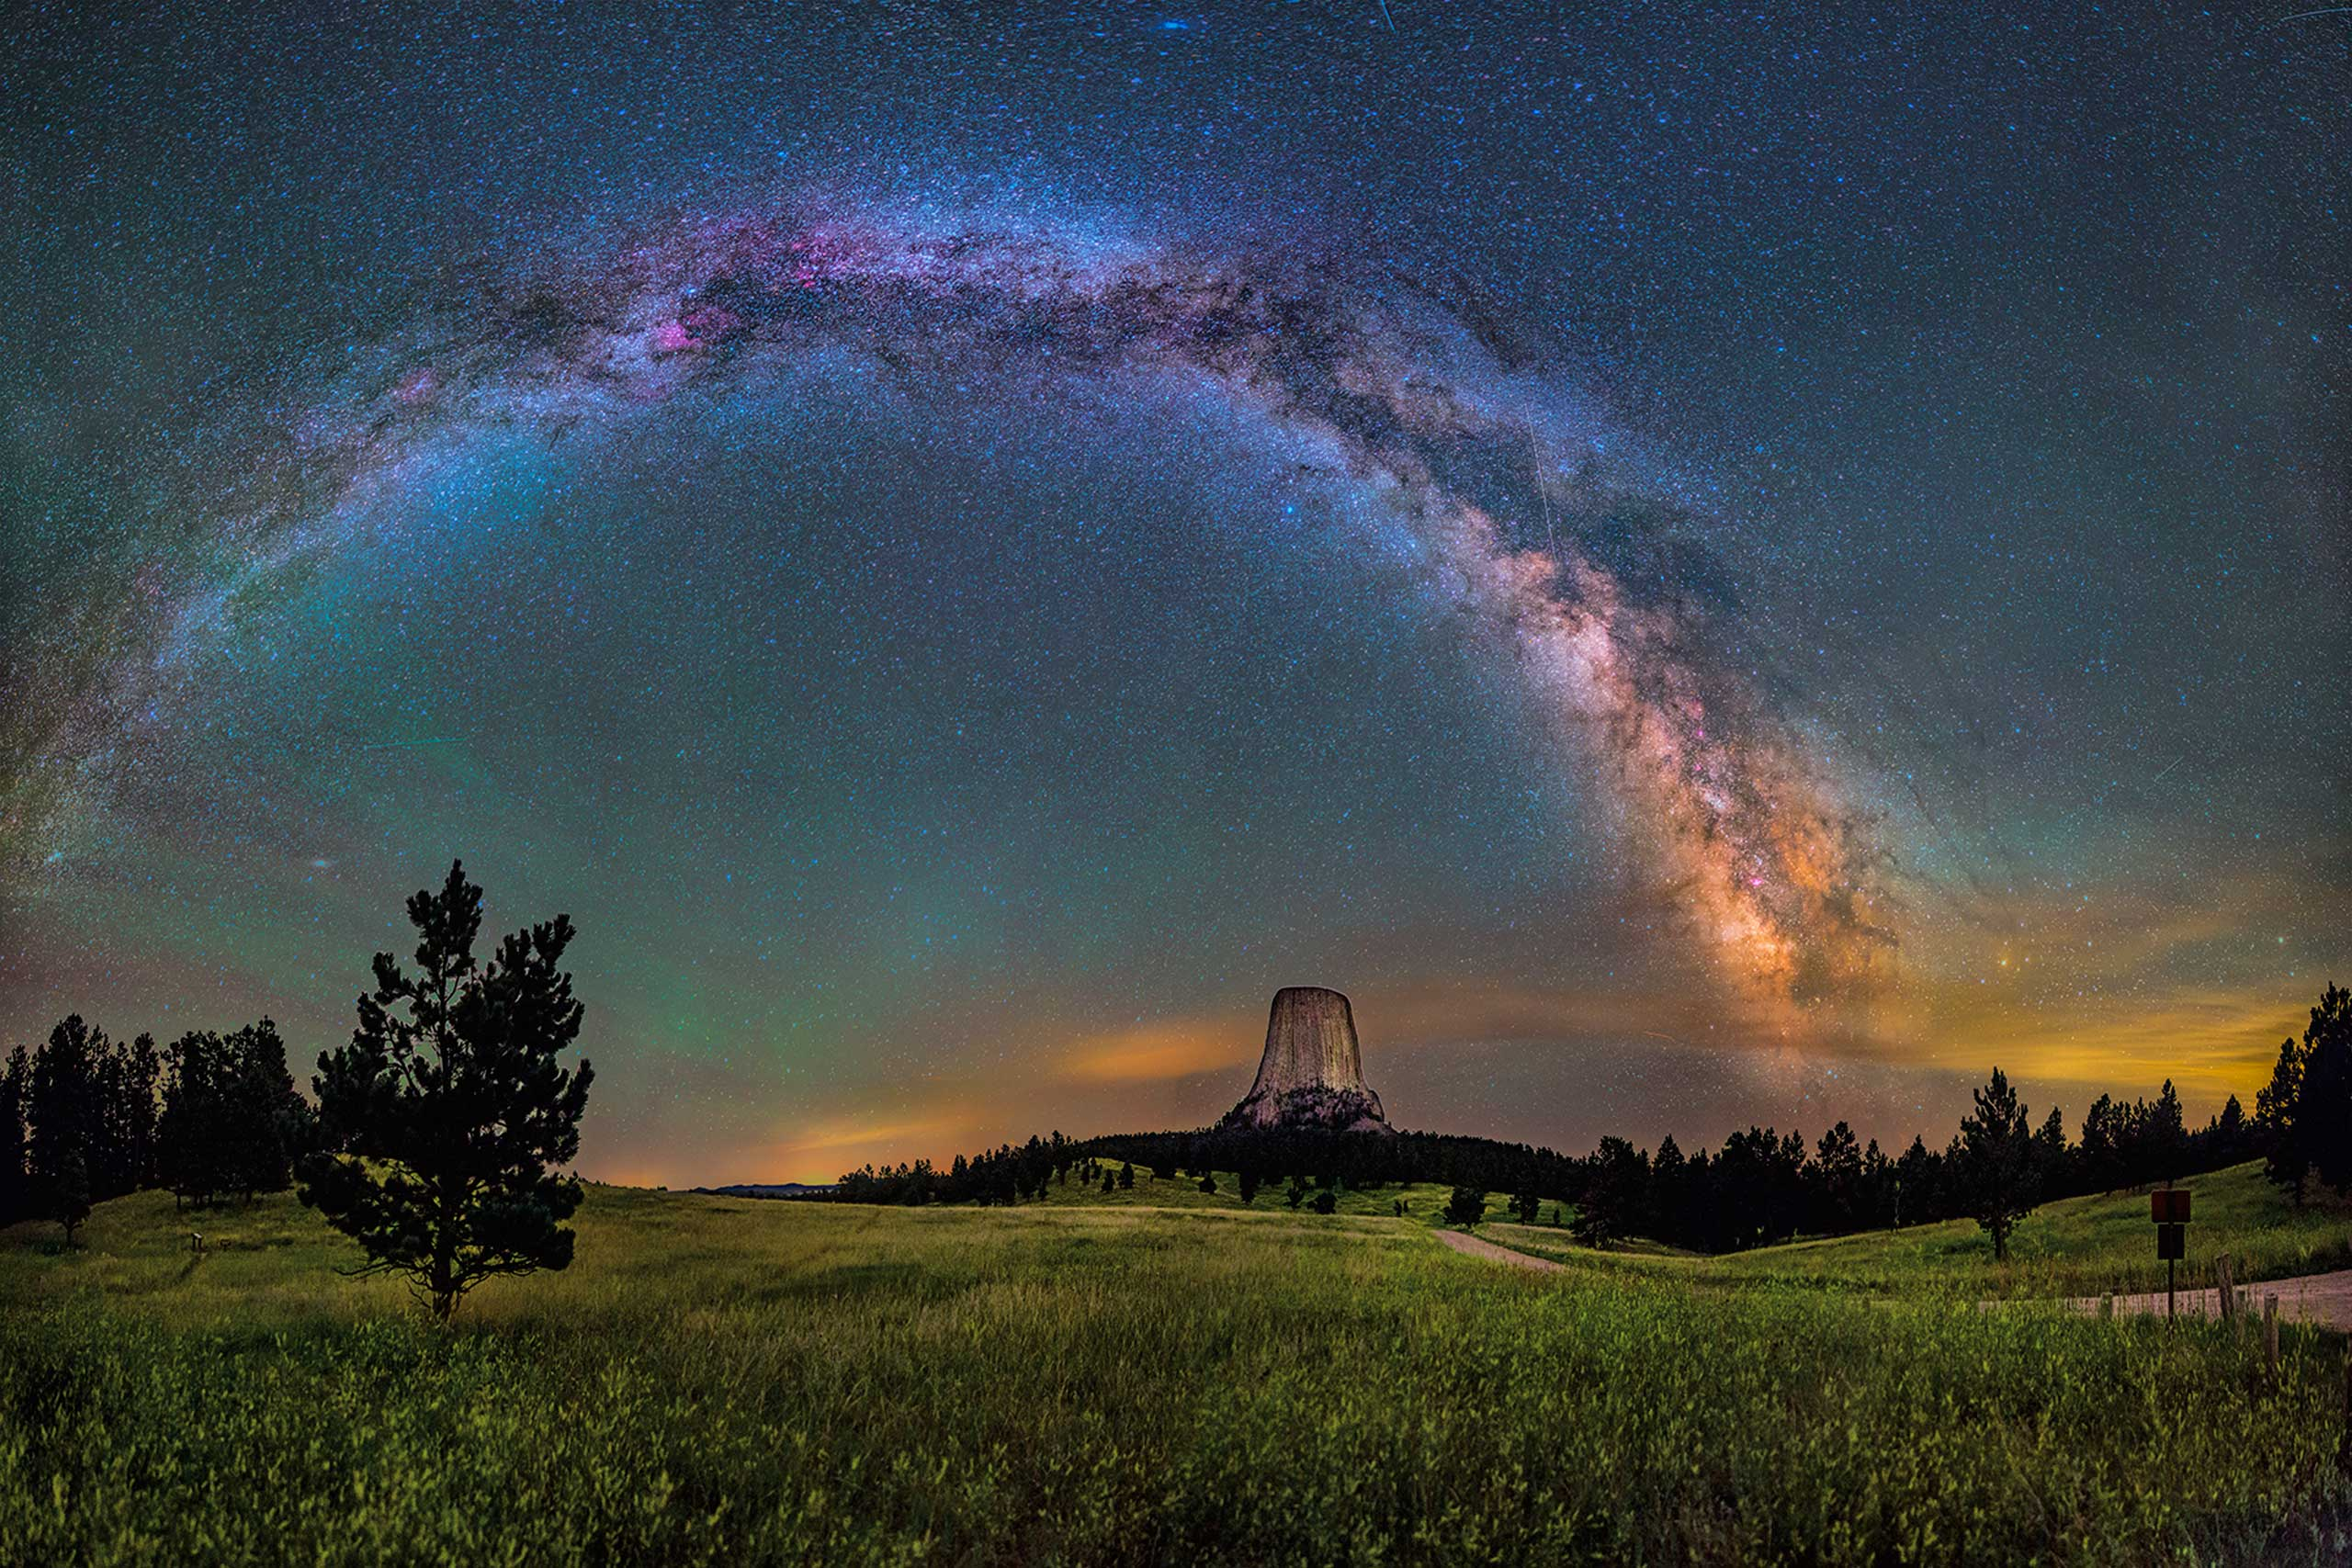 America's first national monument, Devils Tower is a geologic feature that protrudes out of the rolling prairie in Wyoming. David Lane (@drlane56) captured this amazing 16-image panorama of the monument illuminated by the Milky Way and green airglow. Of visiting Devils Tower, David says:  From ancient stories of the Pleiades taking refuge at the top to the generations of Native Americas that held it sacred, it had a deep sense of age and a stoic nature that impressed me. It's so unexpected, so large in person, so steeped in traditions.